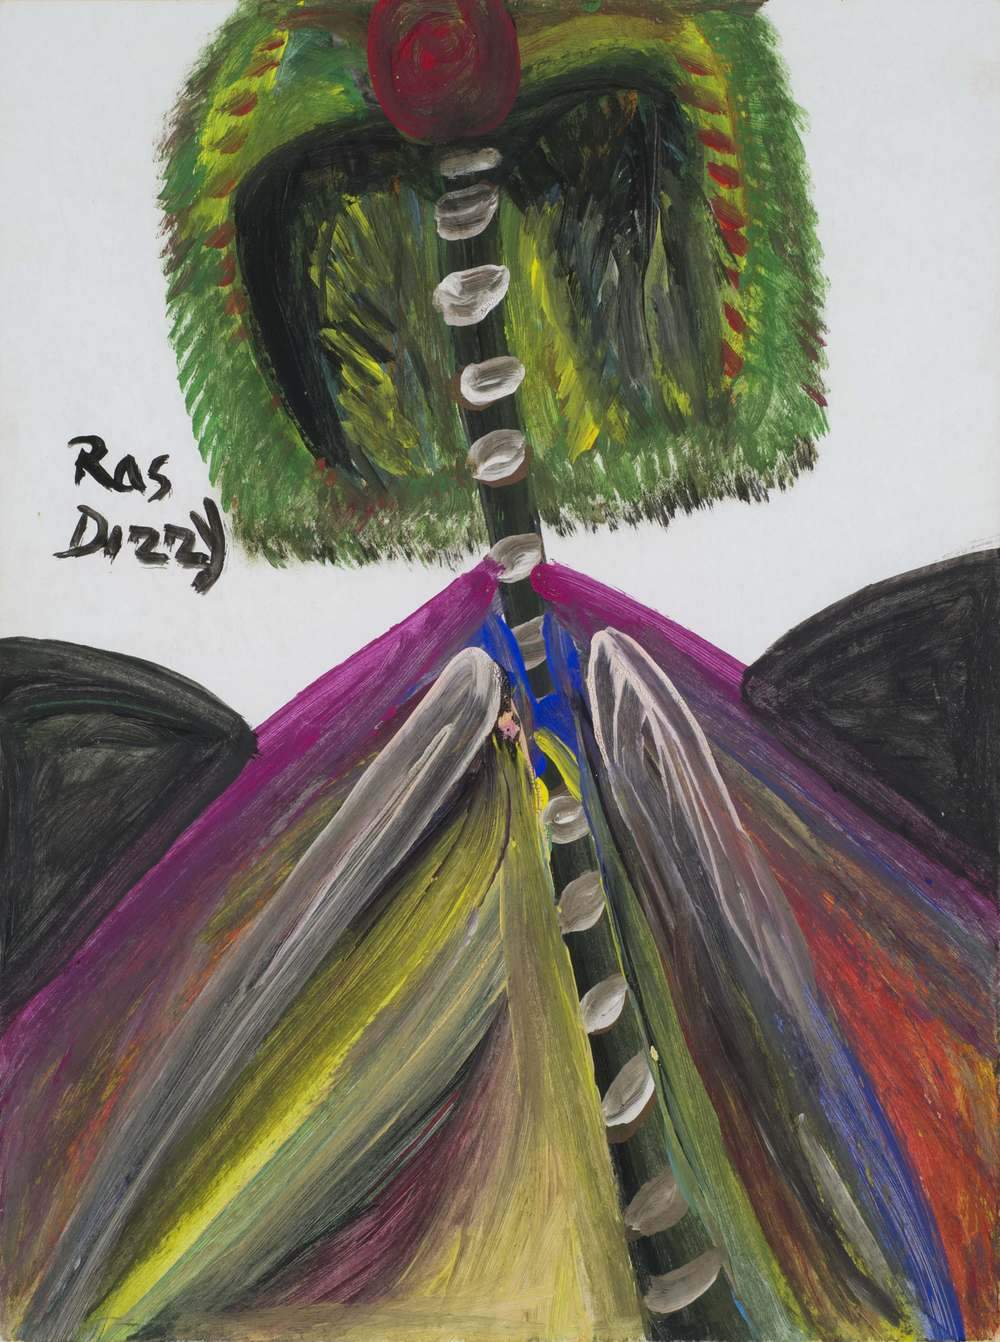 Ras Dizzy    Strive Coconuts Drink Plenty of It Tropical  , 1998 Tempera/matboard 14.5 x 11 inches 36.8 x 27.9 cm RD 77